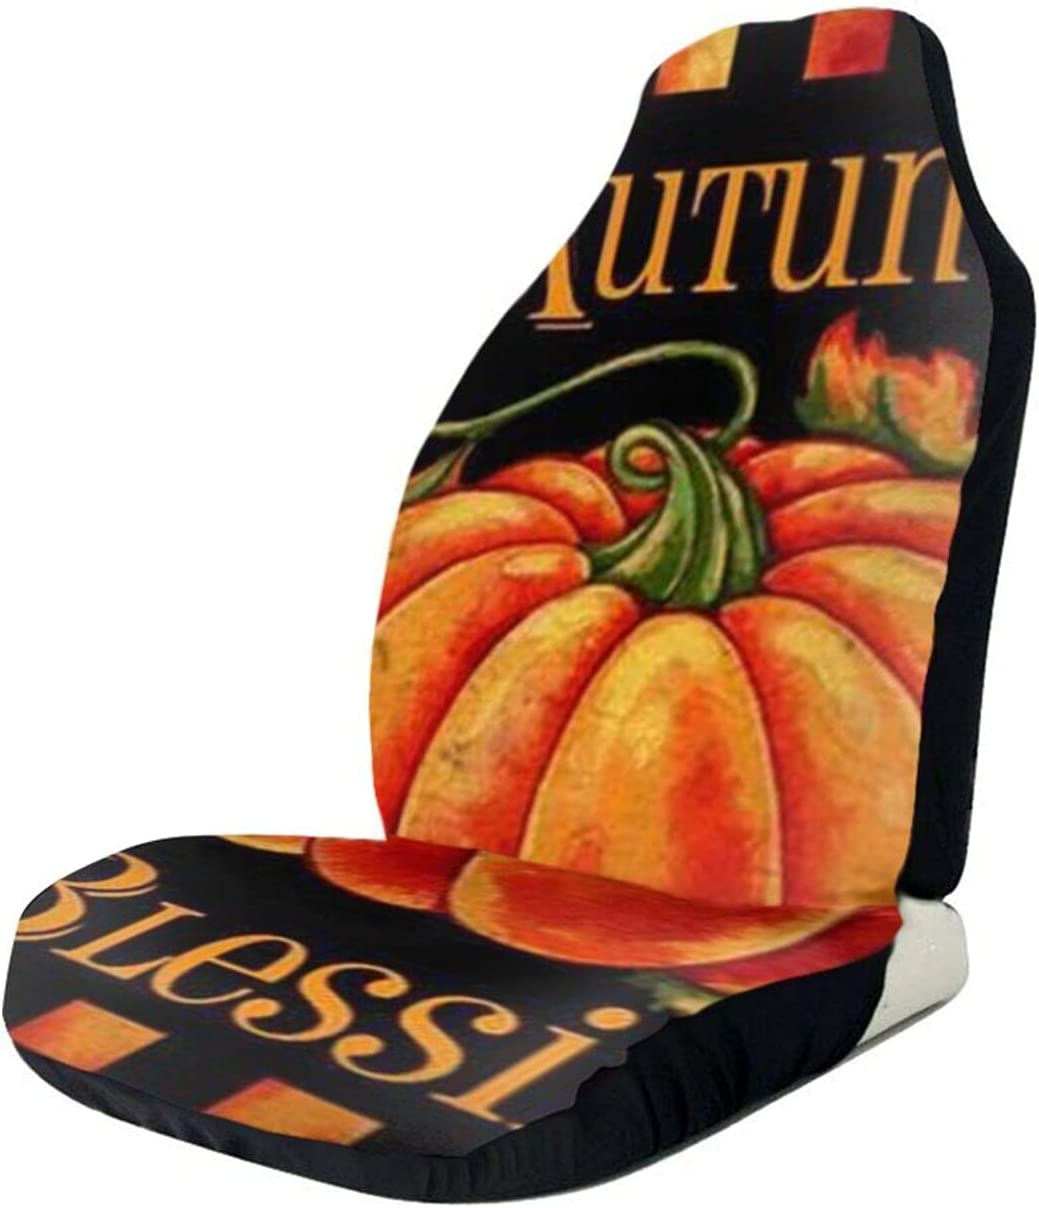 Excellent NGLKJUS Pumpkin Autumn NEW before selling ☆ Blessings Car Seat S Front Printed Covers